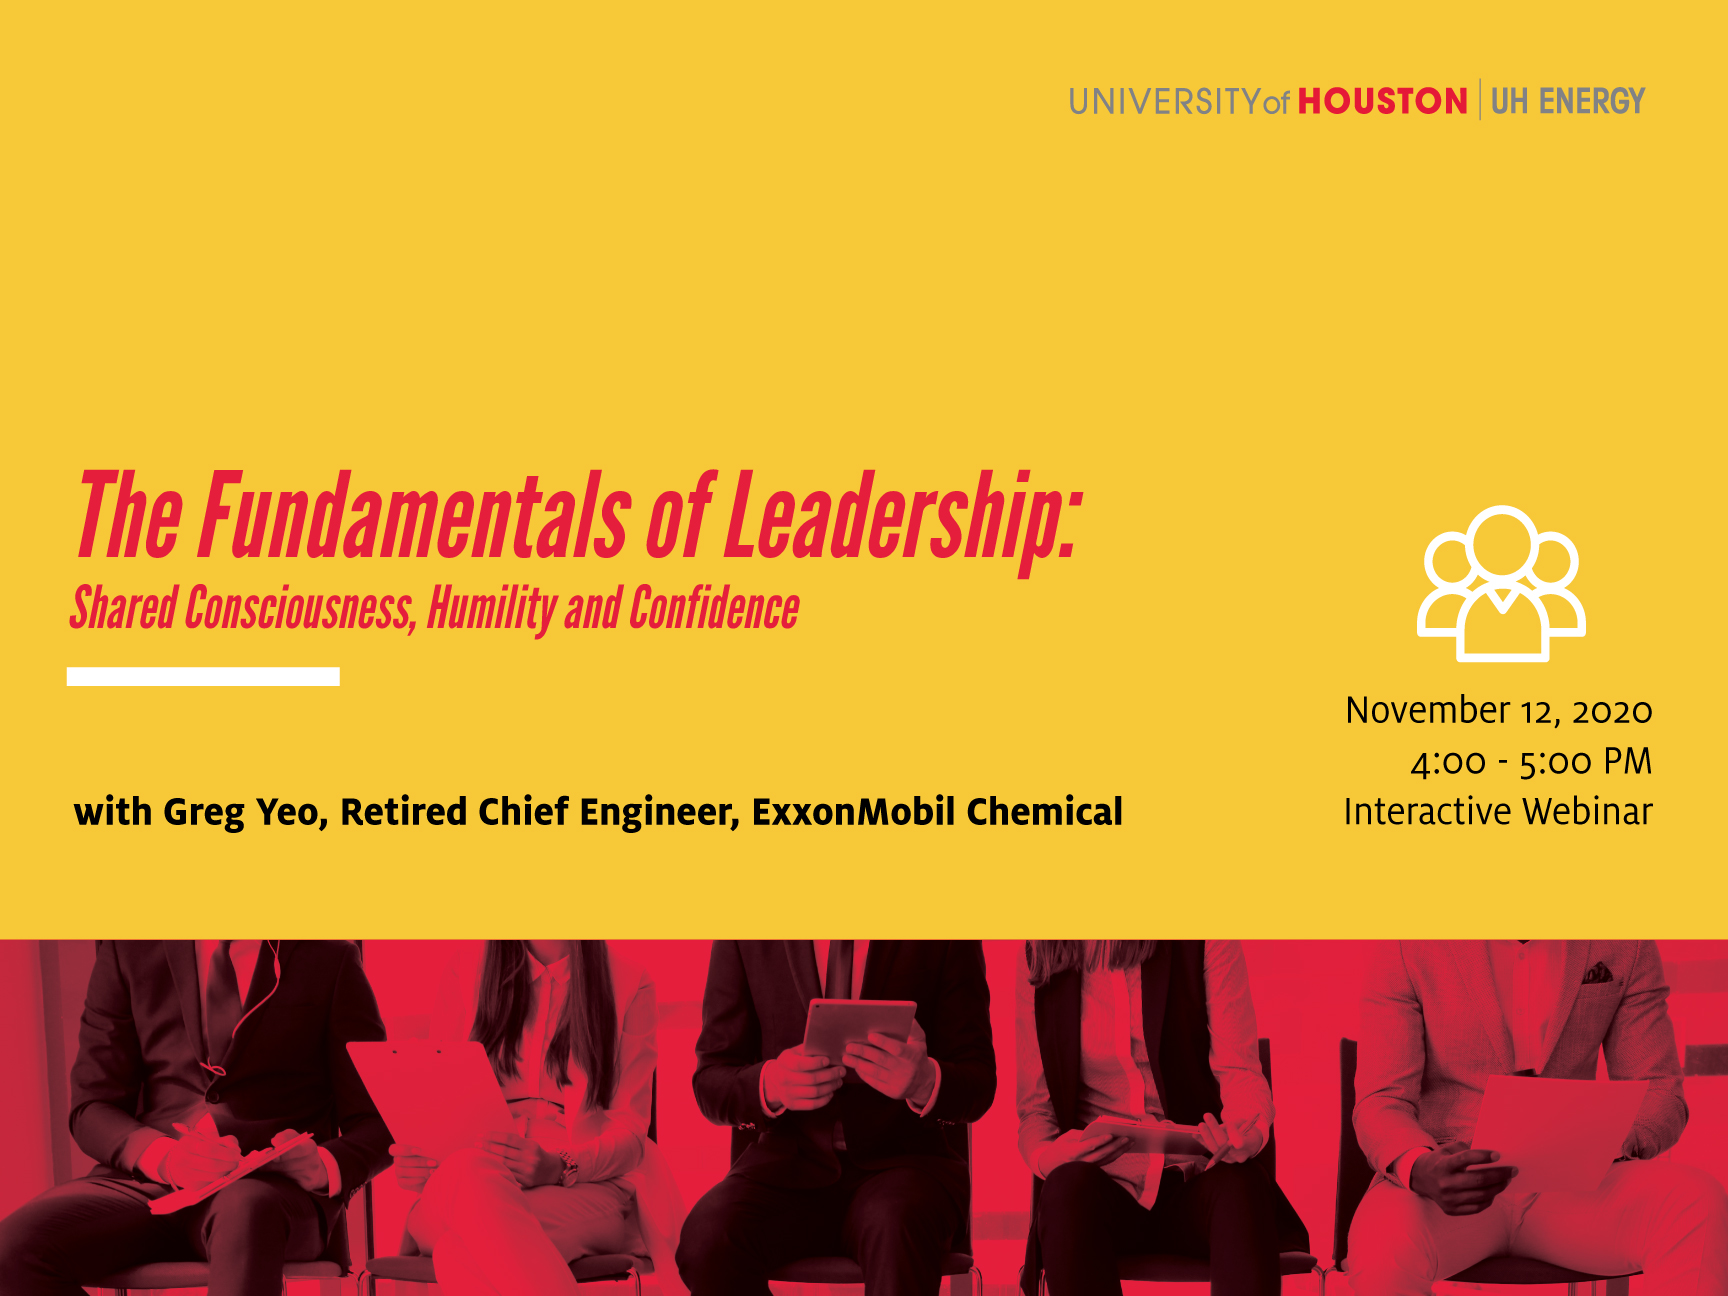 The Fundamentals of Leadership: Shared Consciousness, Humility & Confidence Image